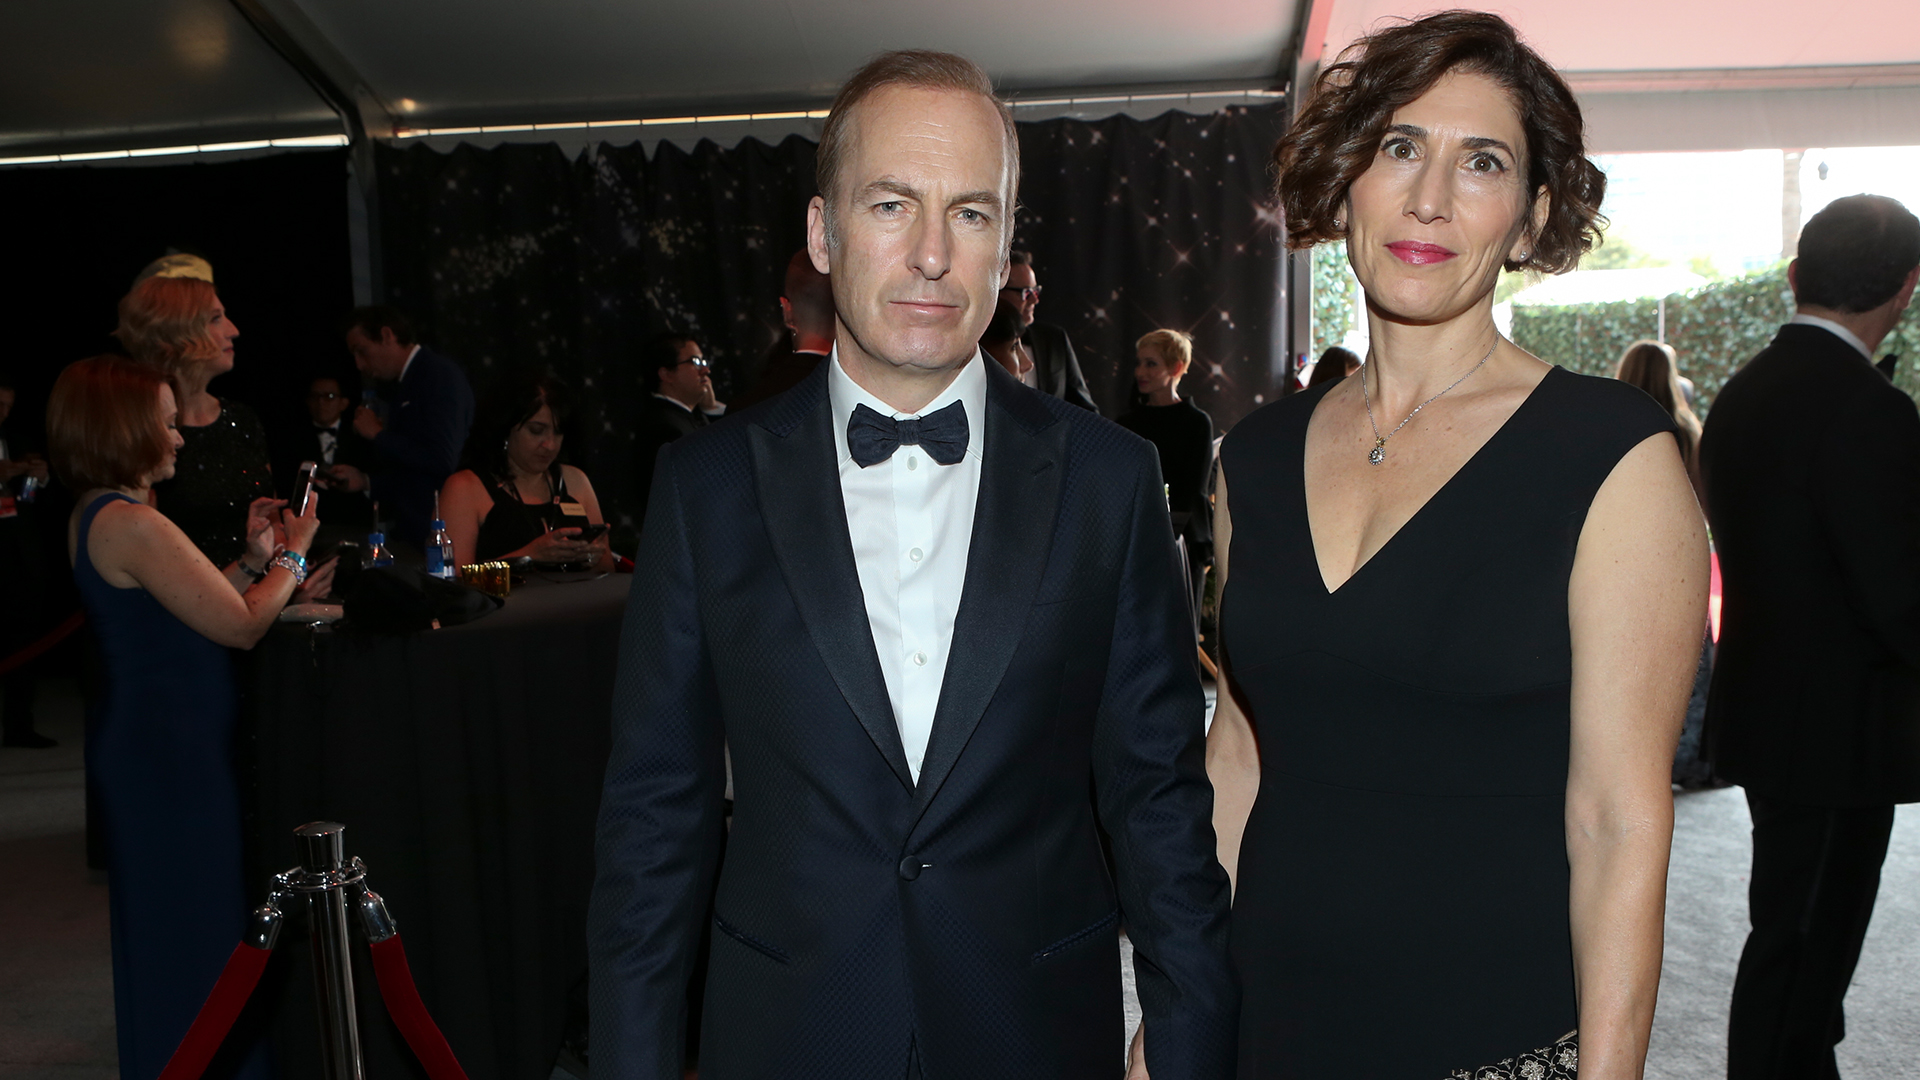 Bob Odenkirk from Better Call Saul and wife Naomi Odenkirk